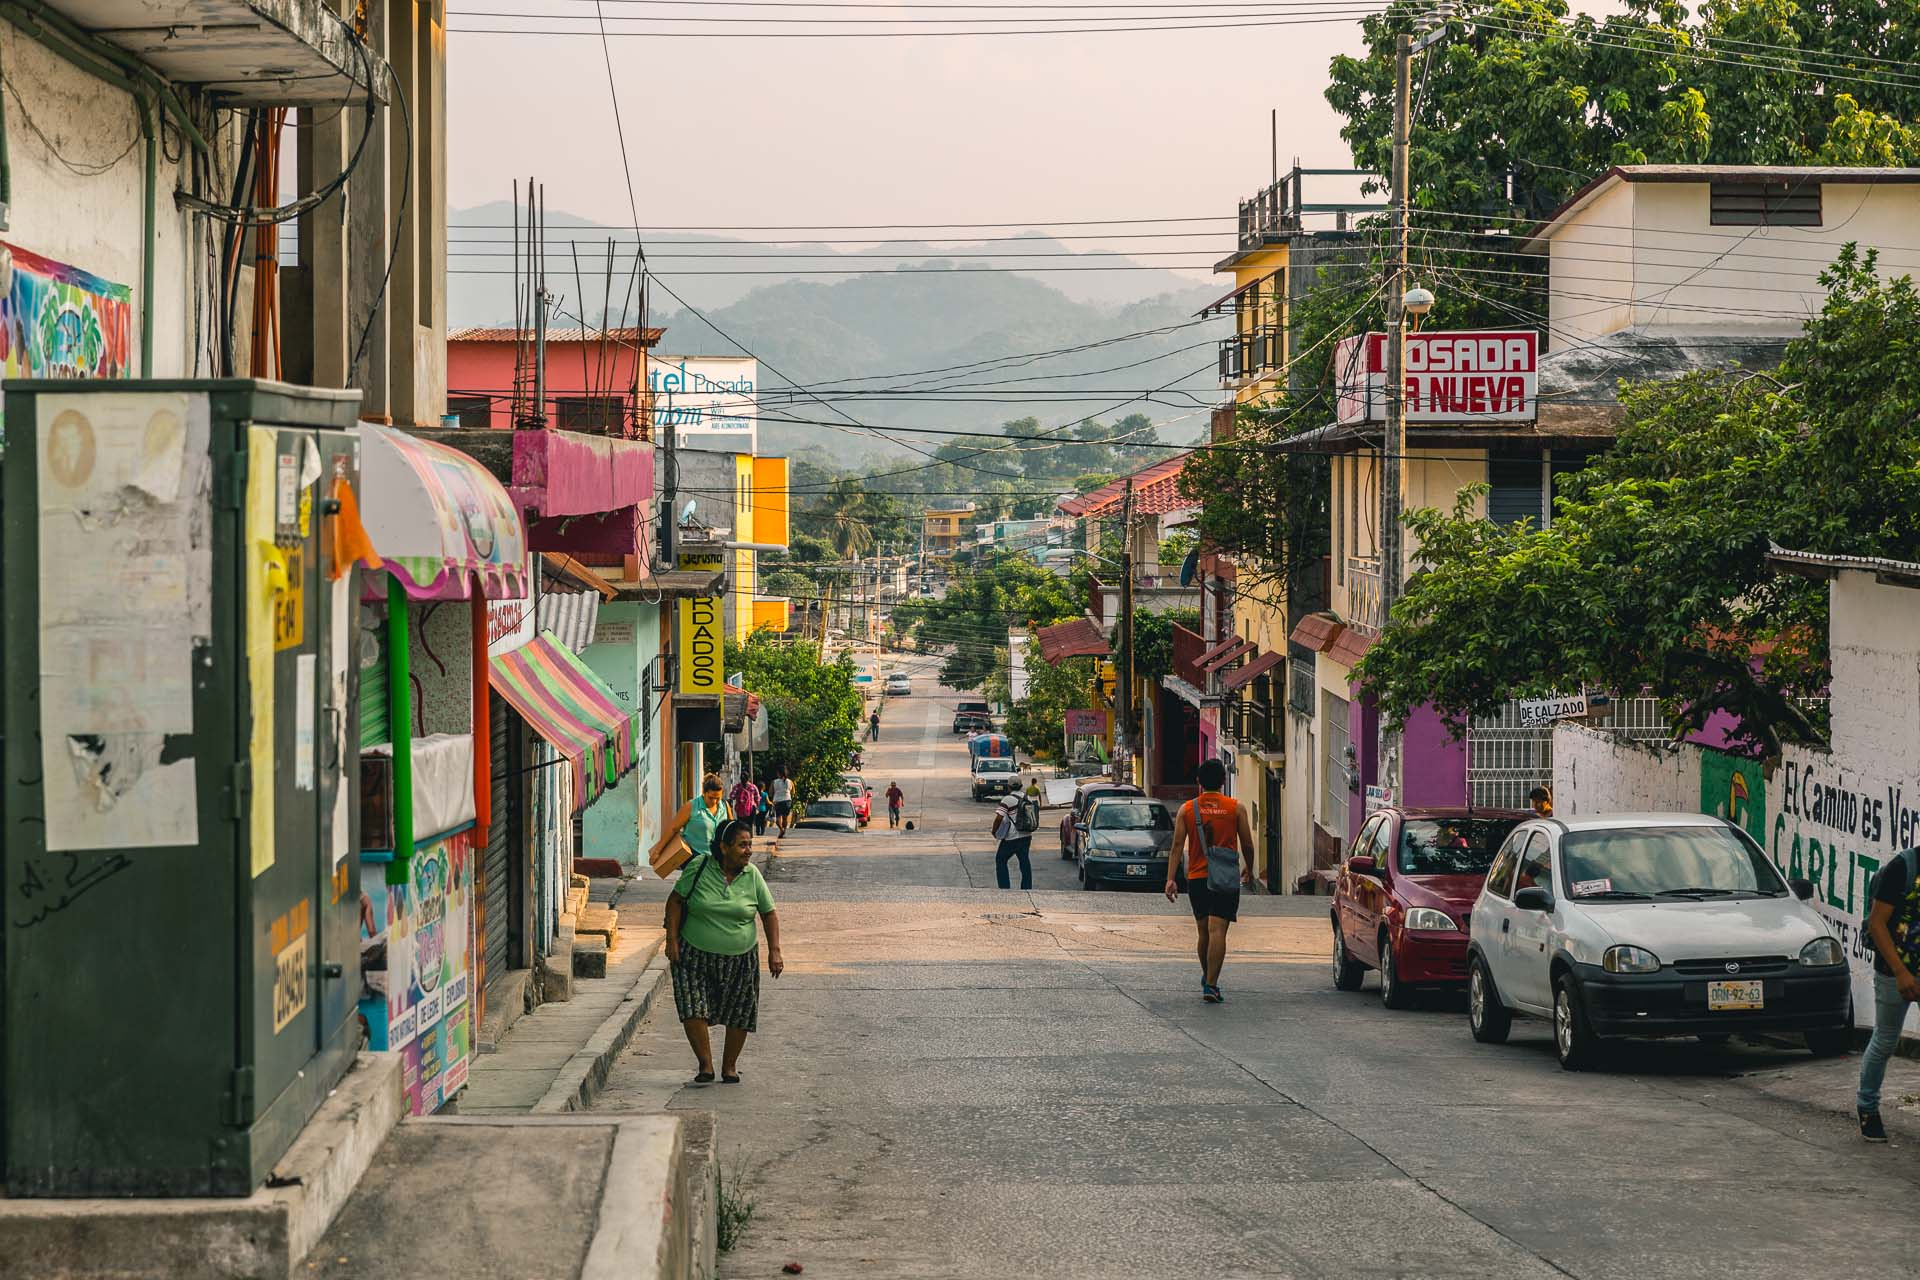 The city of Palenque was also quite cozy with lots of great food, sunny weather and pretty views.